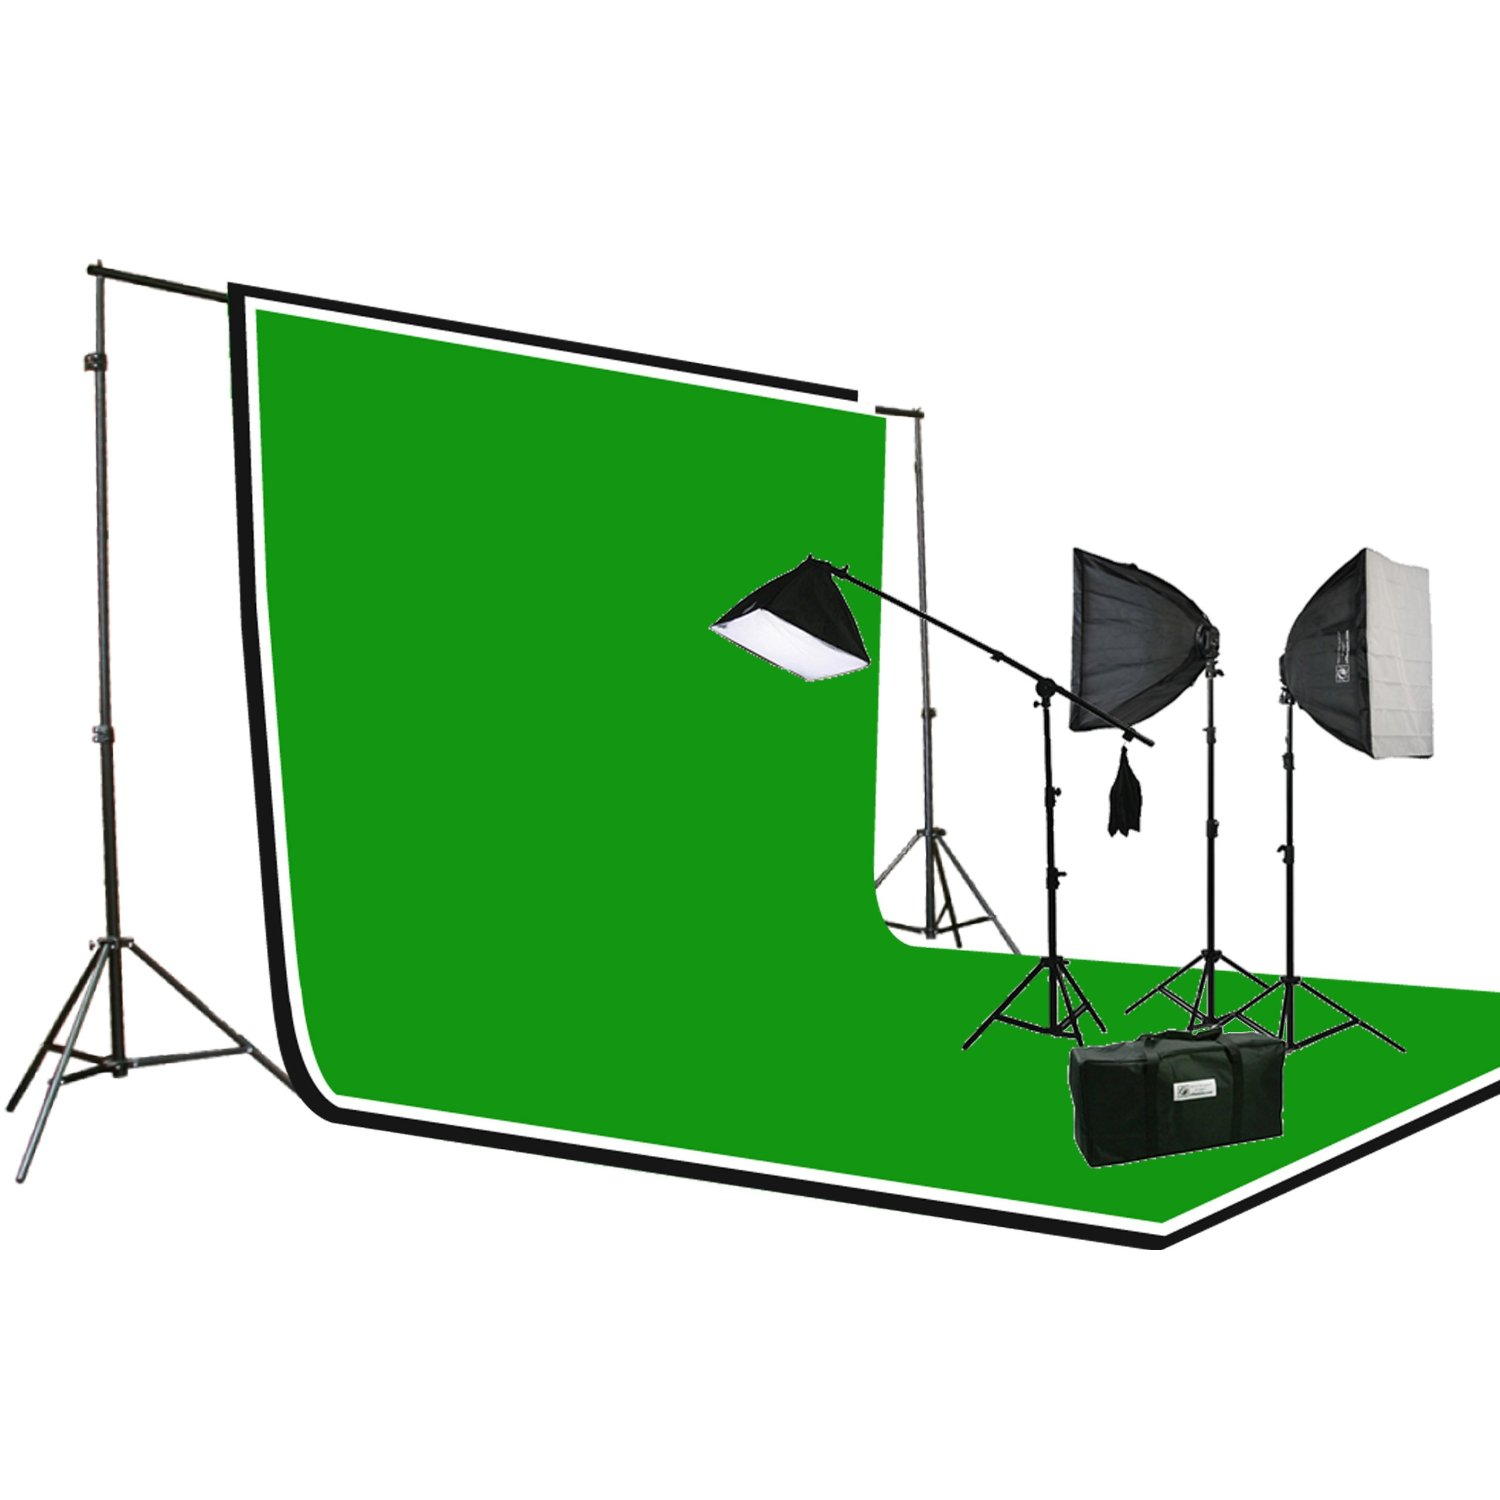 3pcs Chromakey Green, Black, White Muslin Background Backdrop Support Stand & Complete 3200 Watt Video Photography Studio Lighting Kit H604SB2-69BWG-0